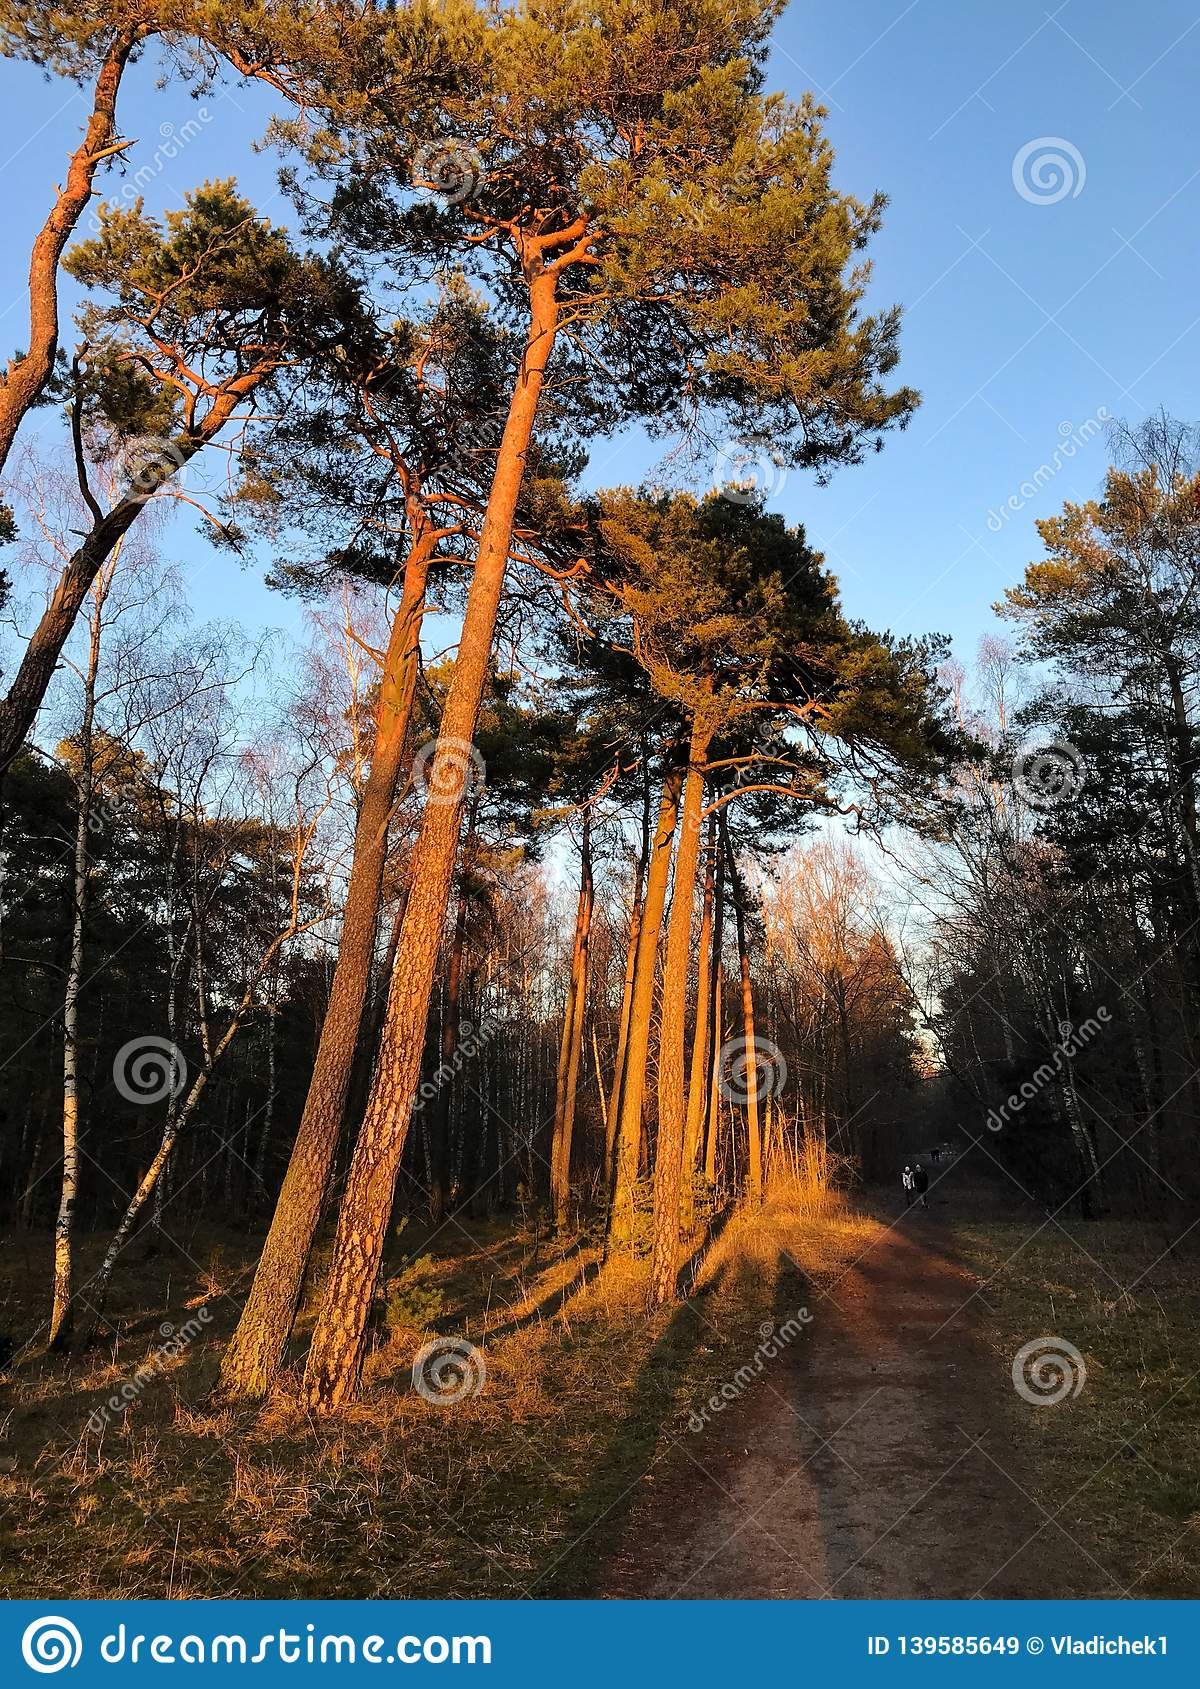 A pine forest lit up by sun